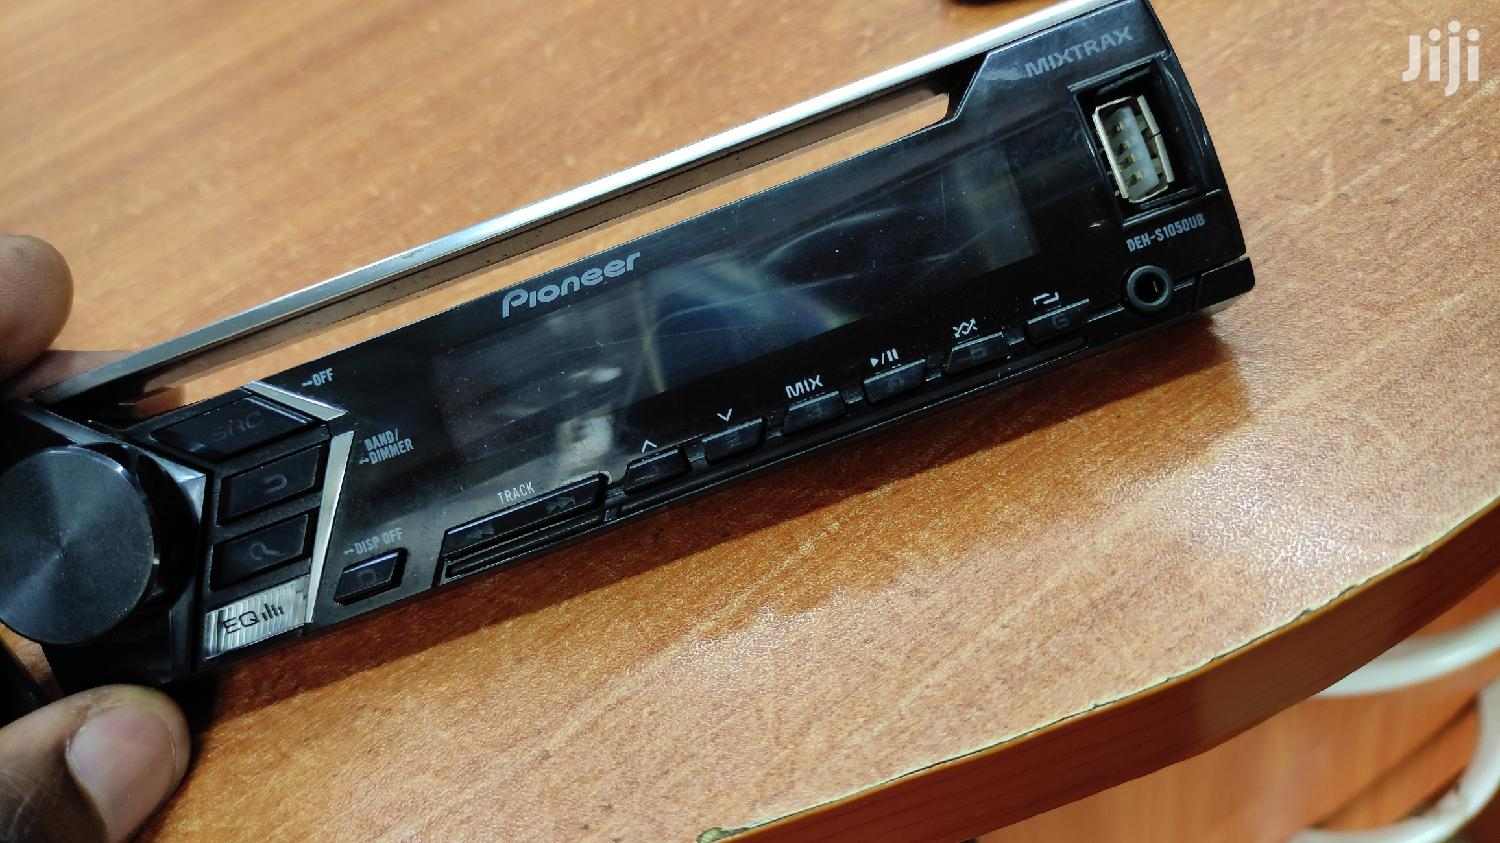 Pioneer Car Radio With Usb And Dvd Player | Vehicle Parts & Accessories for sale in Nairobi Central, Nairobi, Kenya